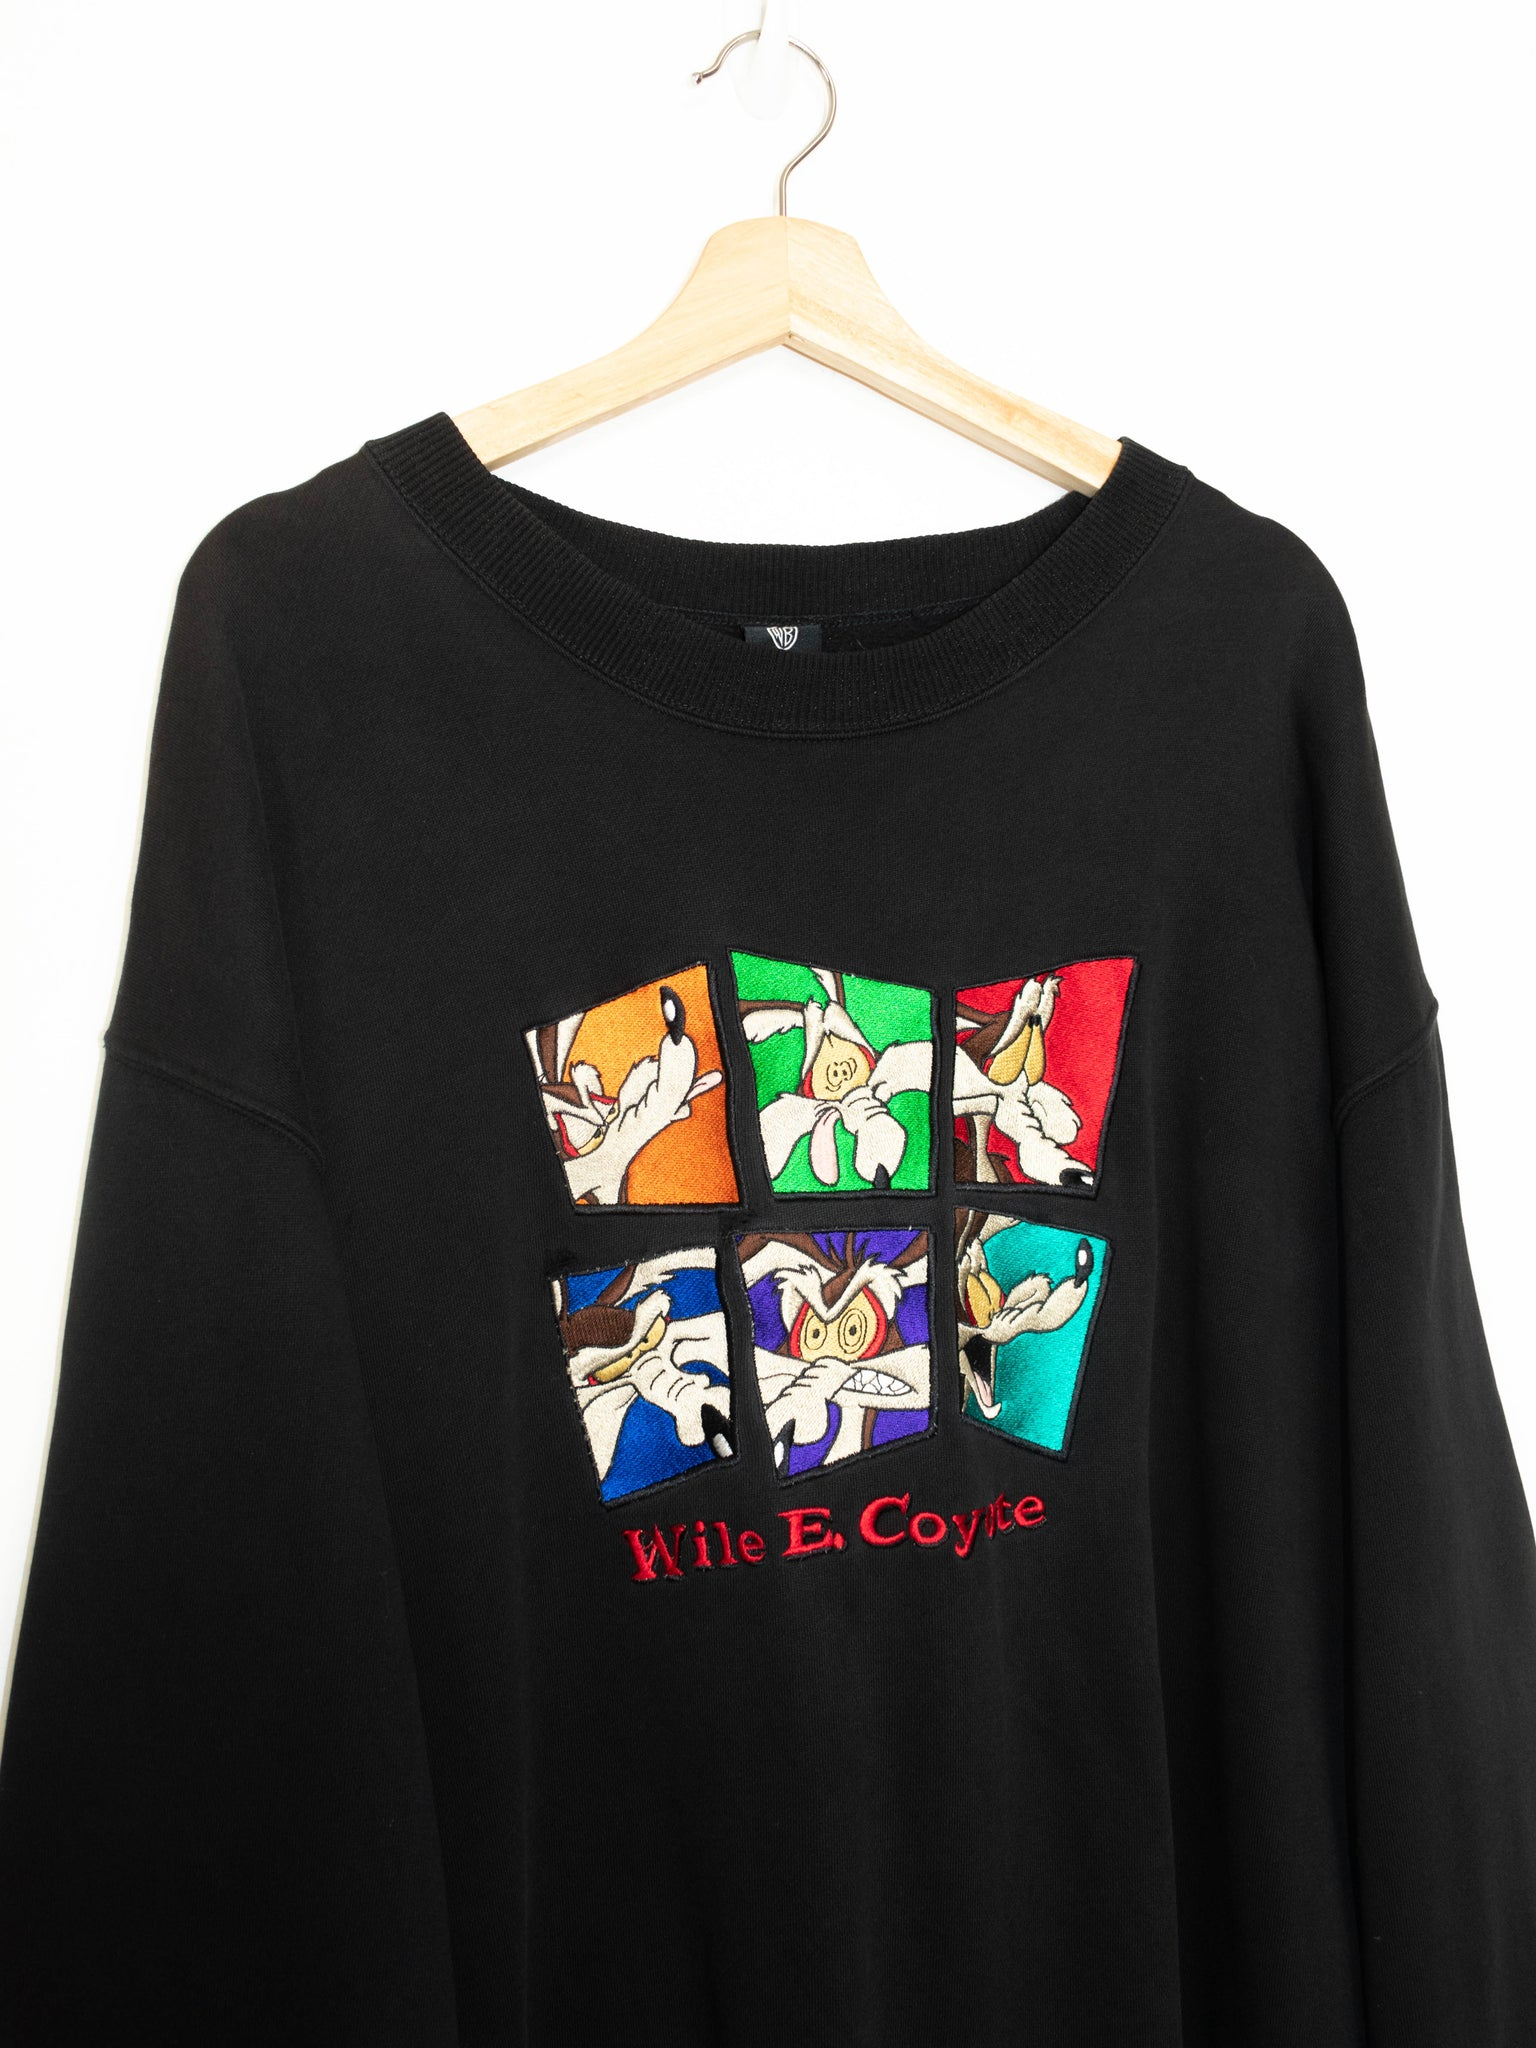 Vintage Wile E Coyote sweater size: XL